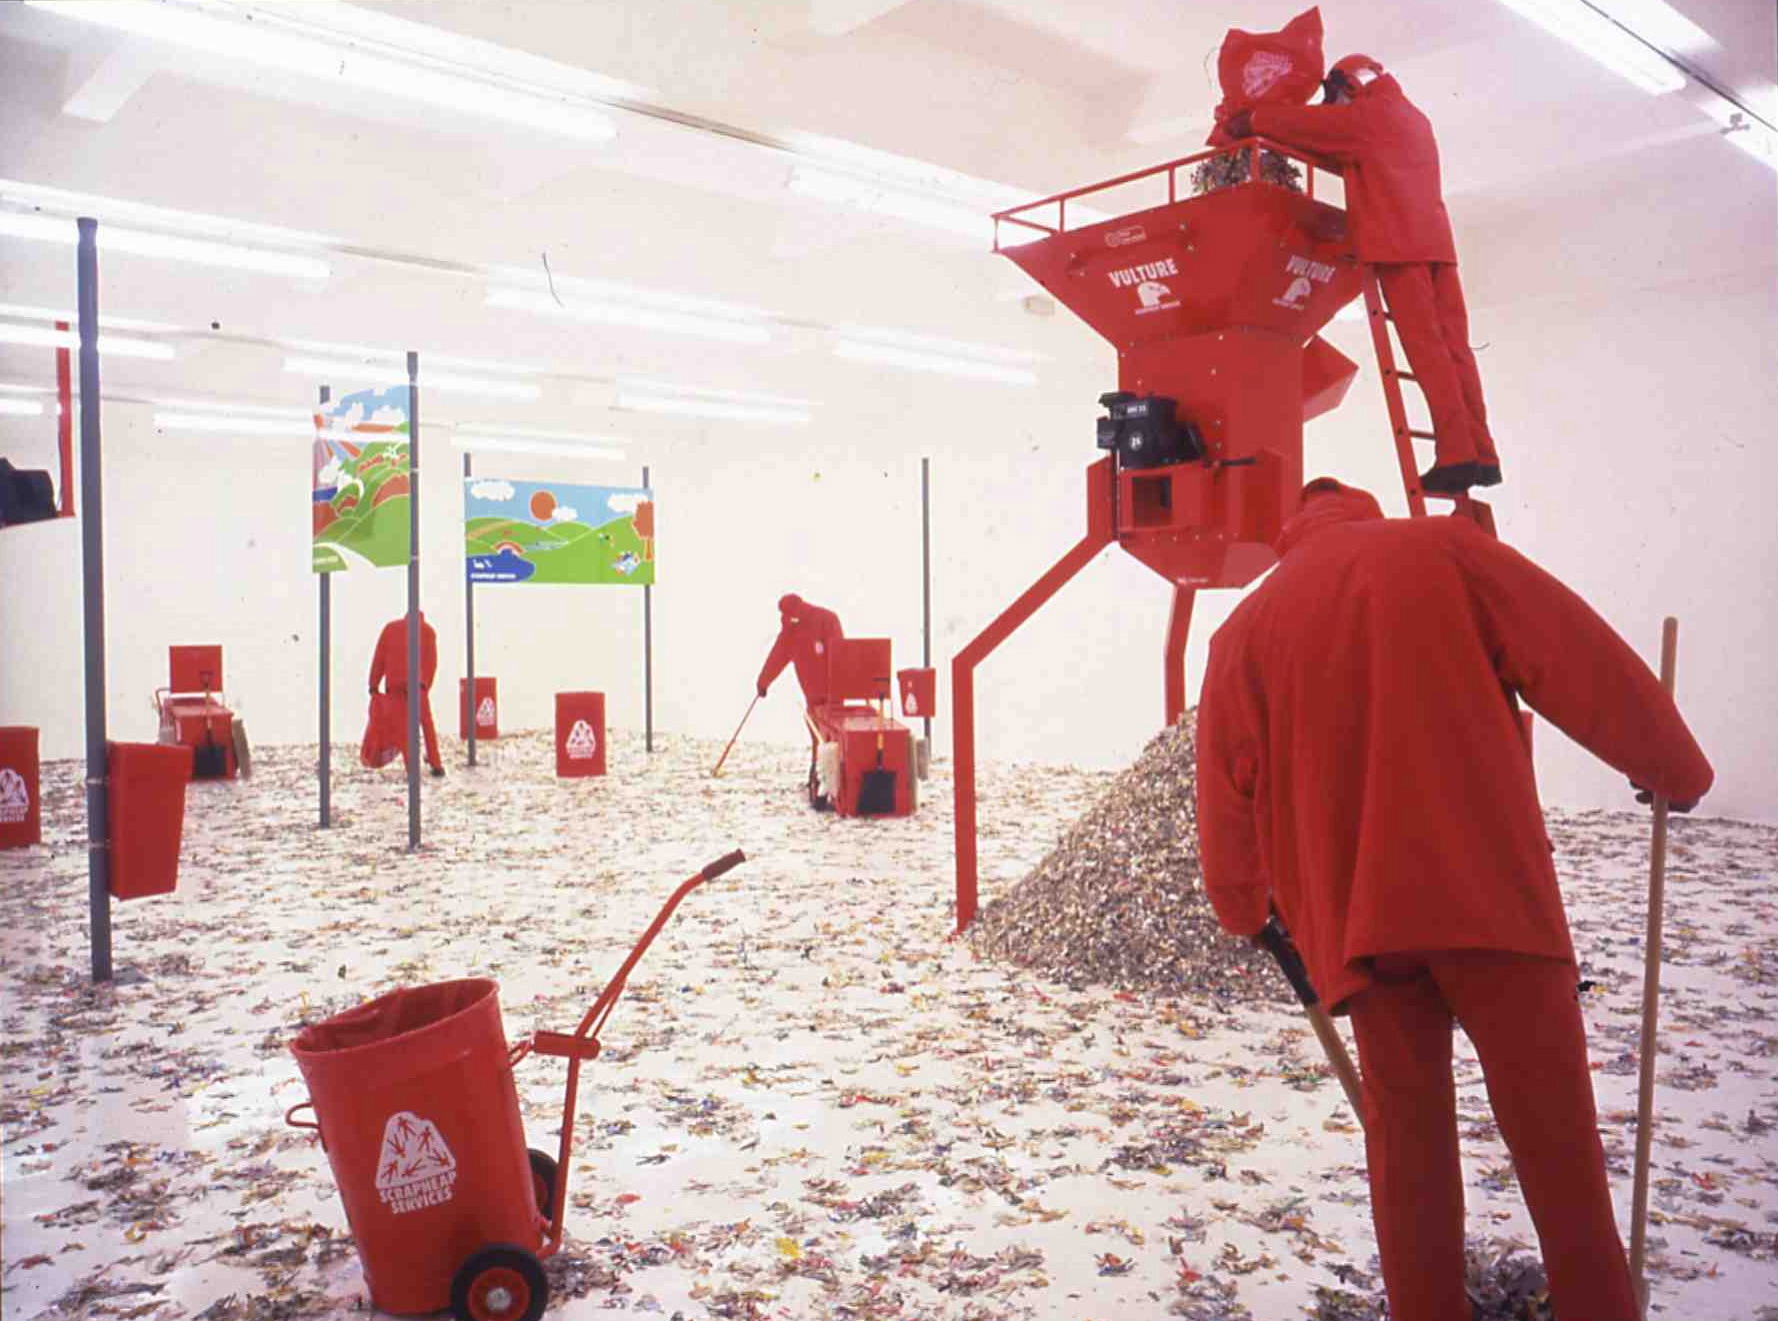 Michael Landy, Scrapheap Services, 1995 Mixed media Installationsansicht, Chisenhale Gallery, London, 1996 Tate Collection, London